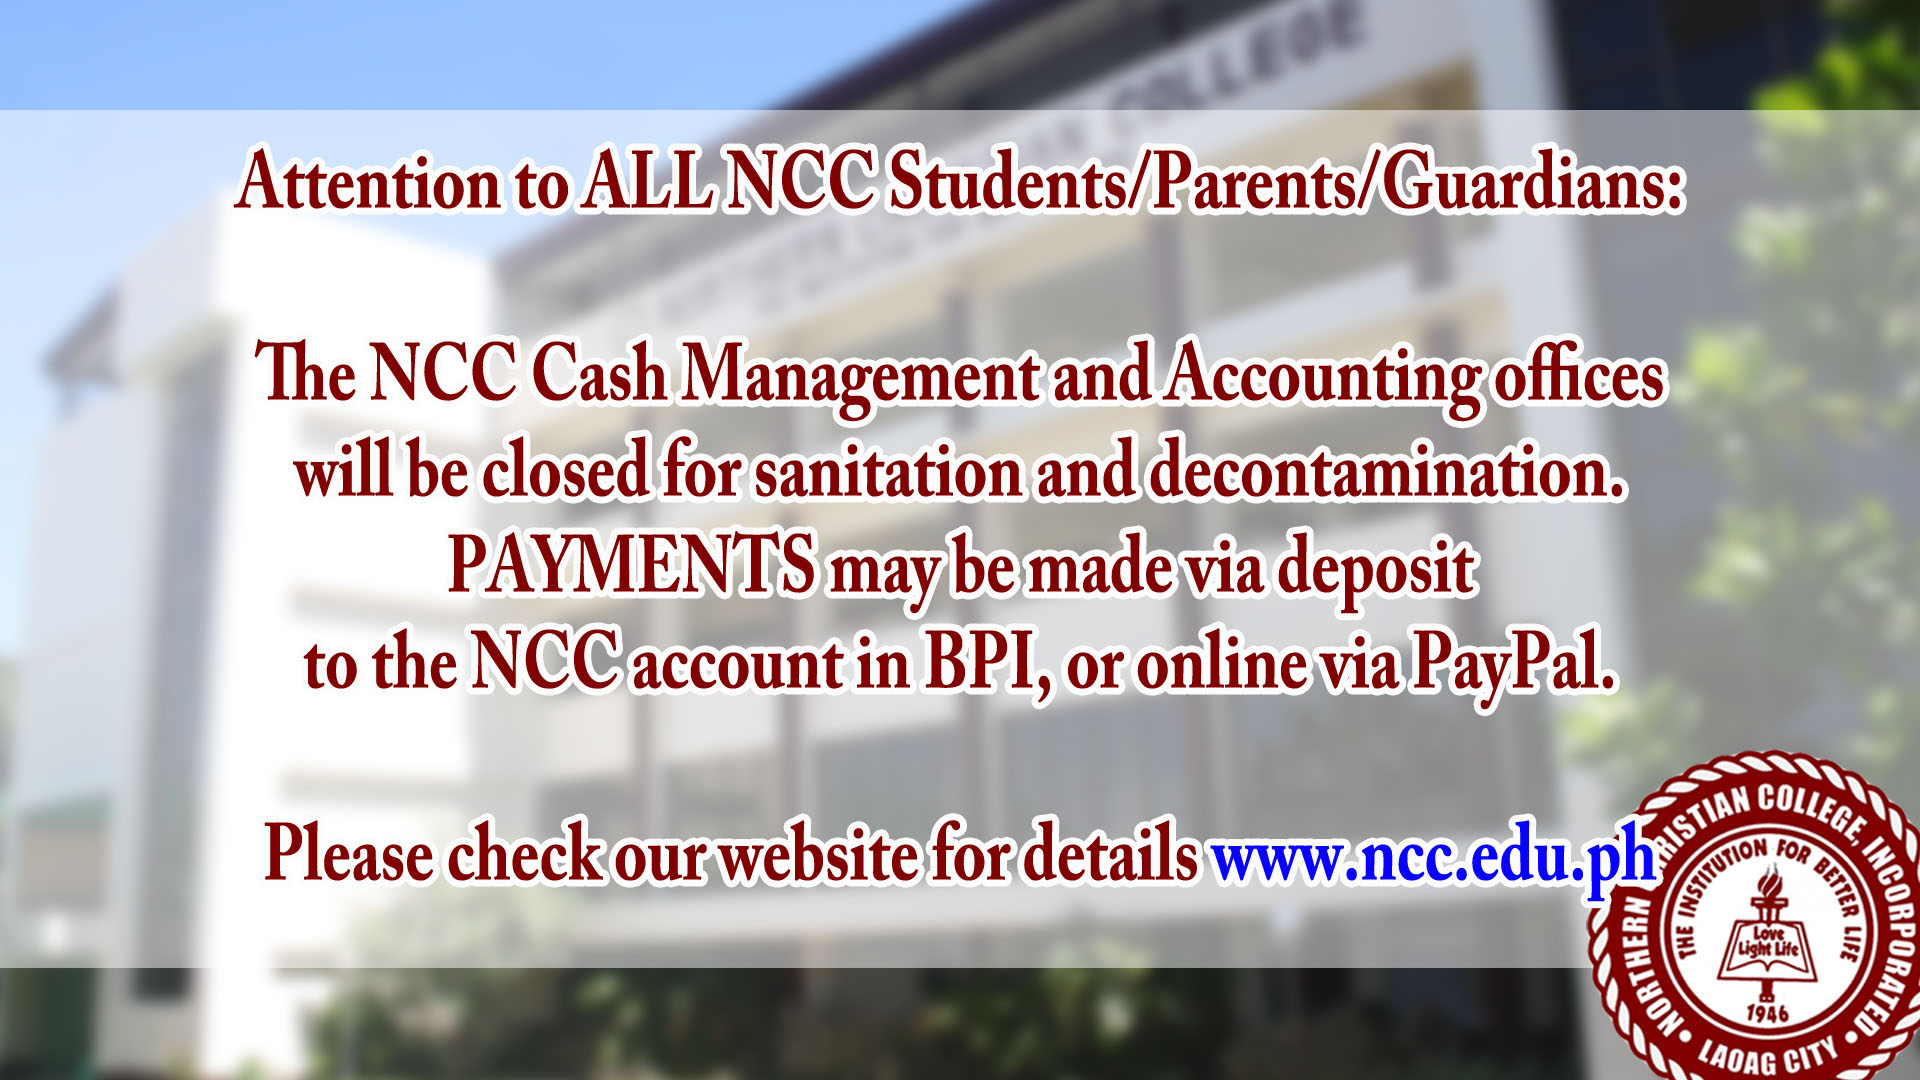 Attention to ALL NCC Students/Parents/Guardians: